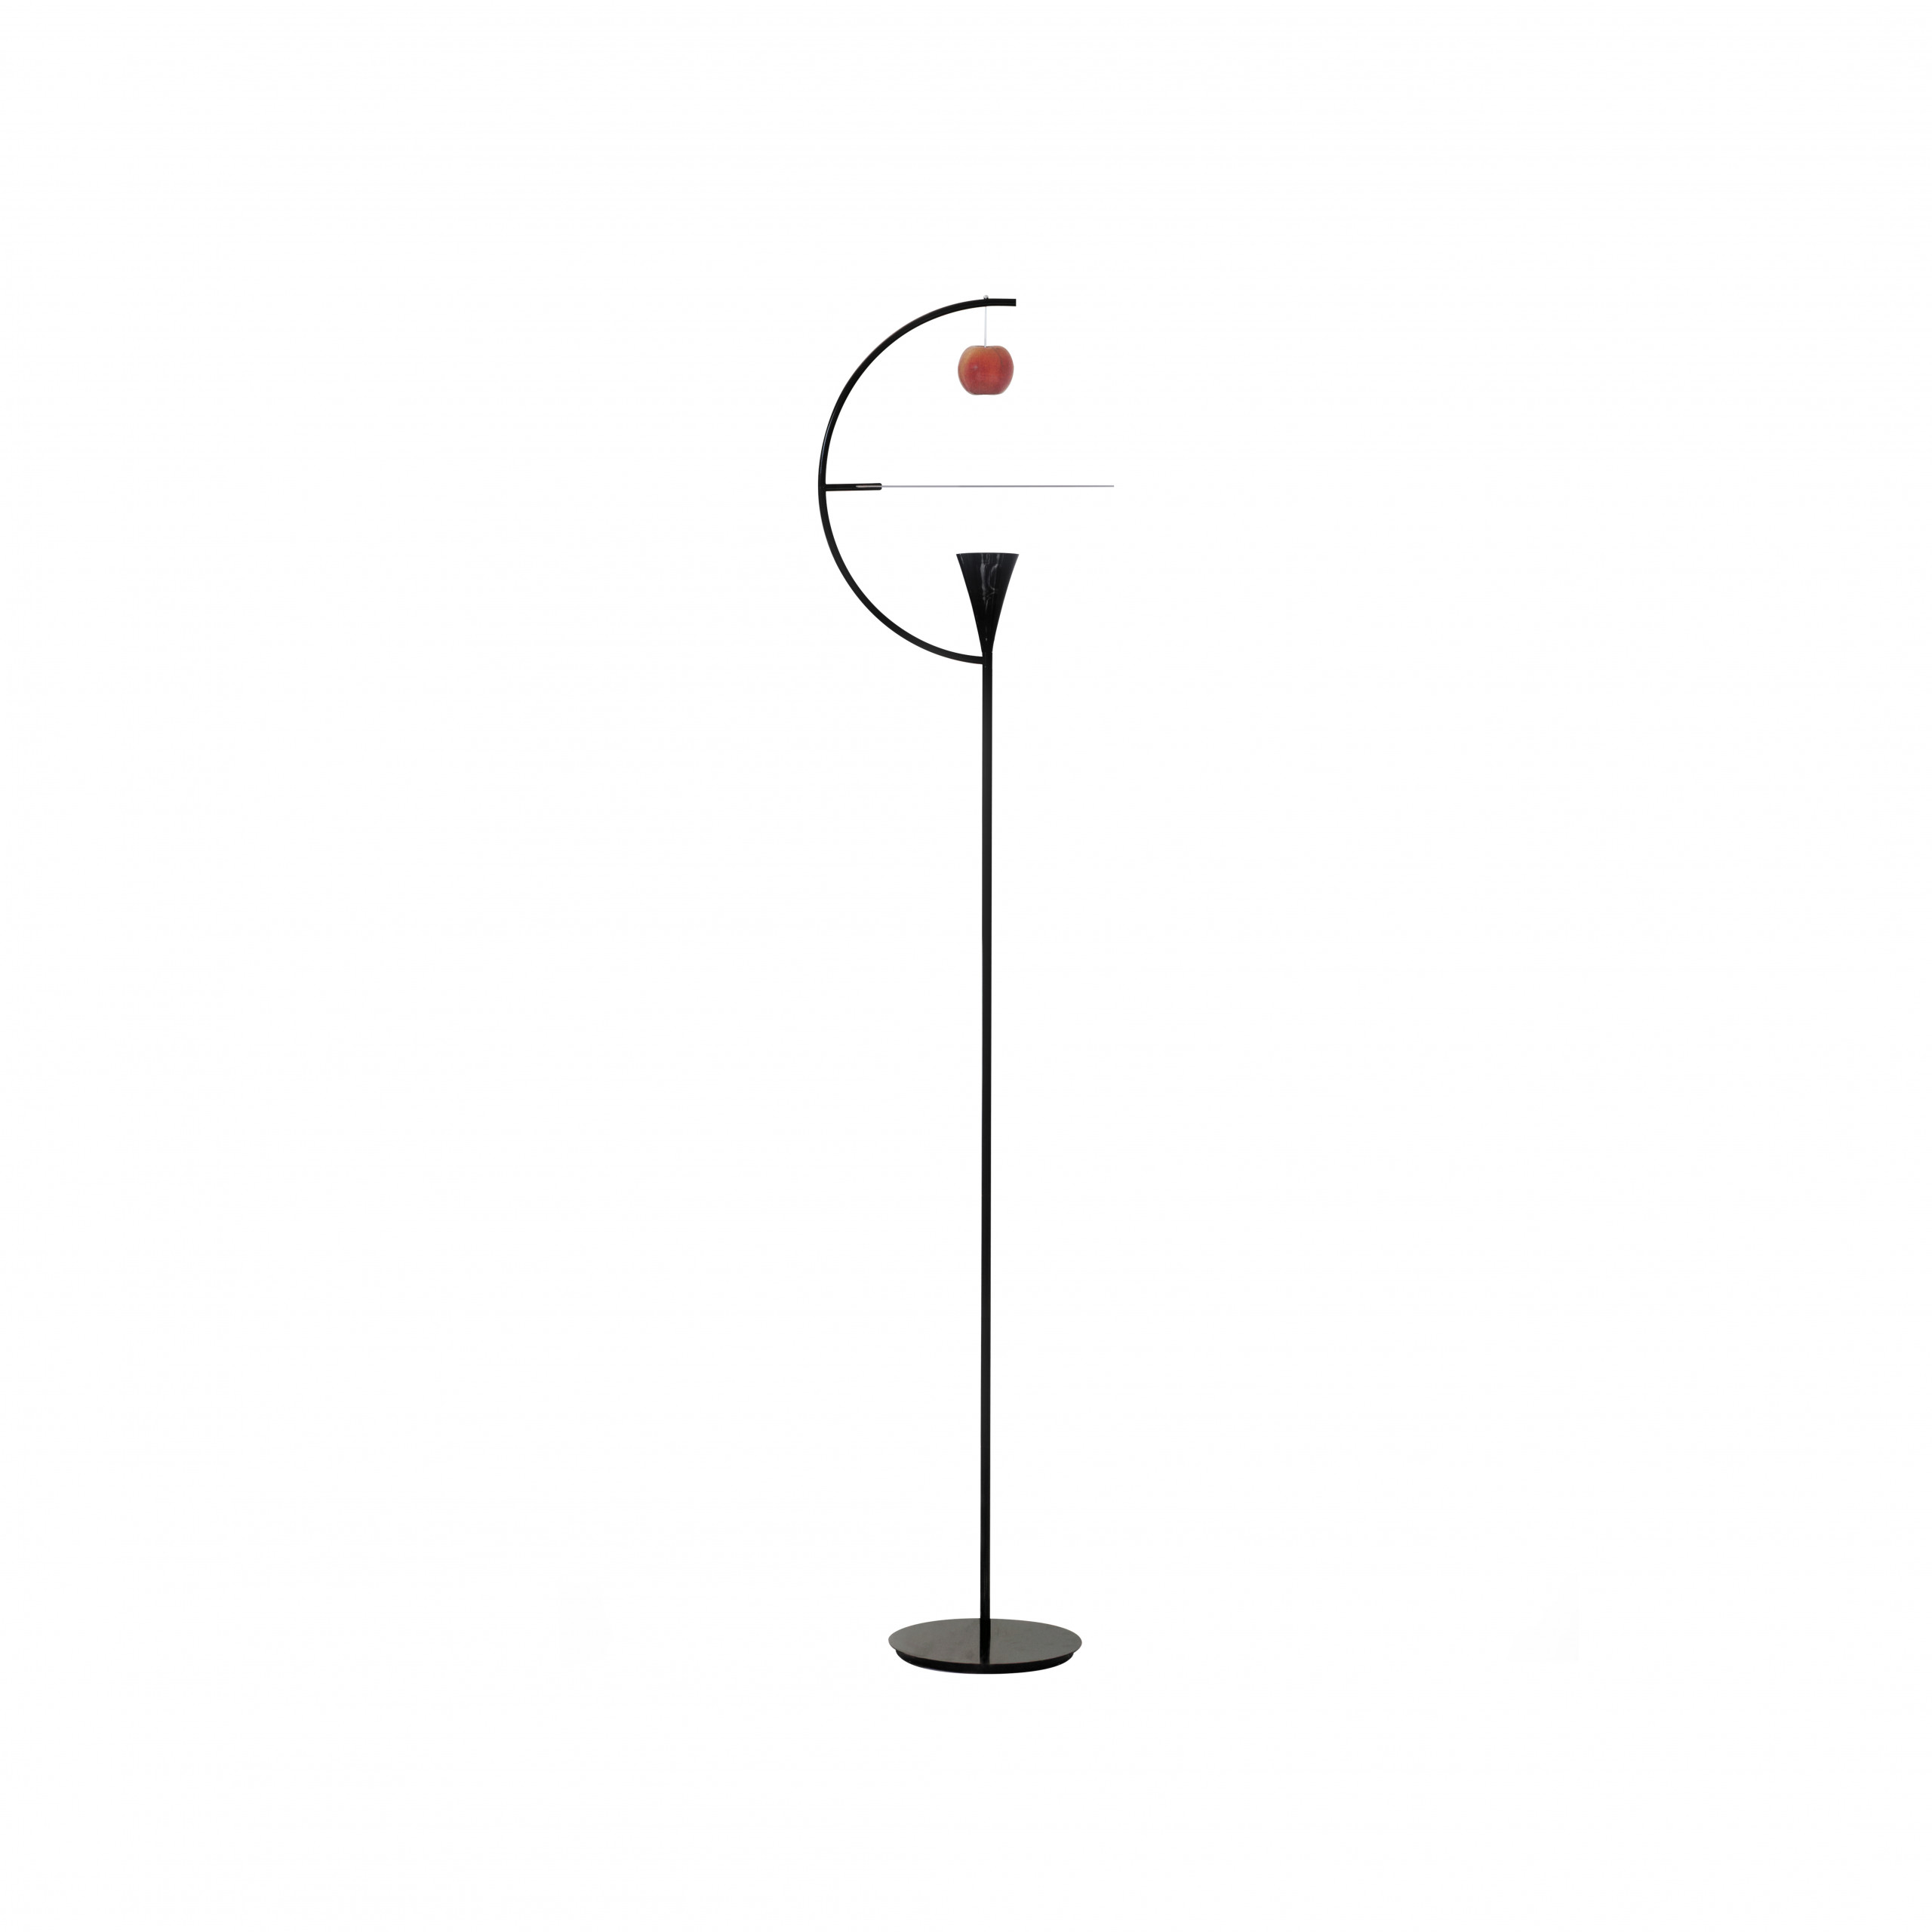 Newton Floor Lamp - Floor LED lamp with structure in chrome metal or glossy black lacquered and white painted aluminium diffuser. The diffuser rotates and illuminates the natural element, in a mixture of direct and diffused light. A high performance LED source has been provided to reproduce the colours and nuances of the apple as faithfully as possible. Characterized by a playful reference to the anecdote of the apple that fell on Newton's head making him guess the existence of the force of gravity. Pedal switch dimming.